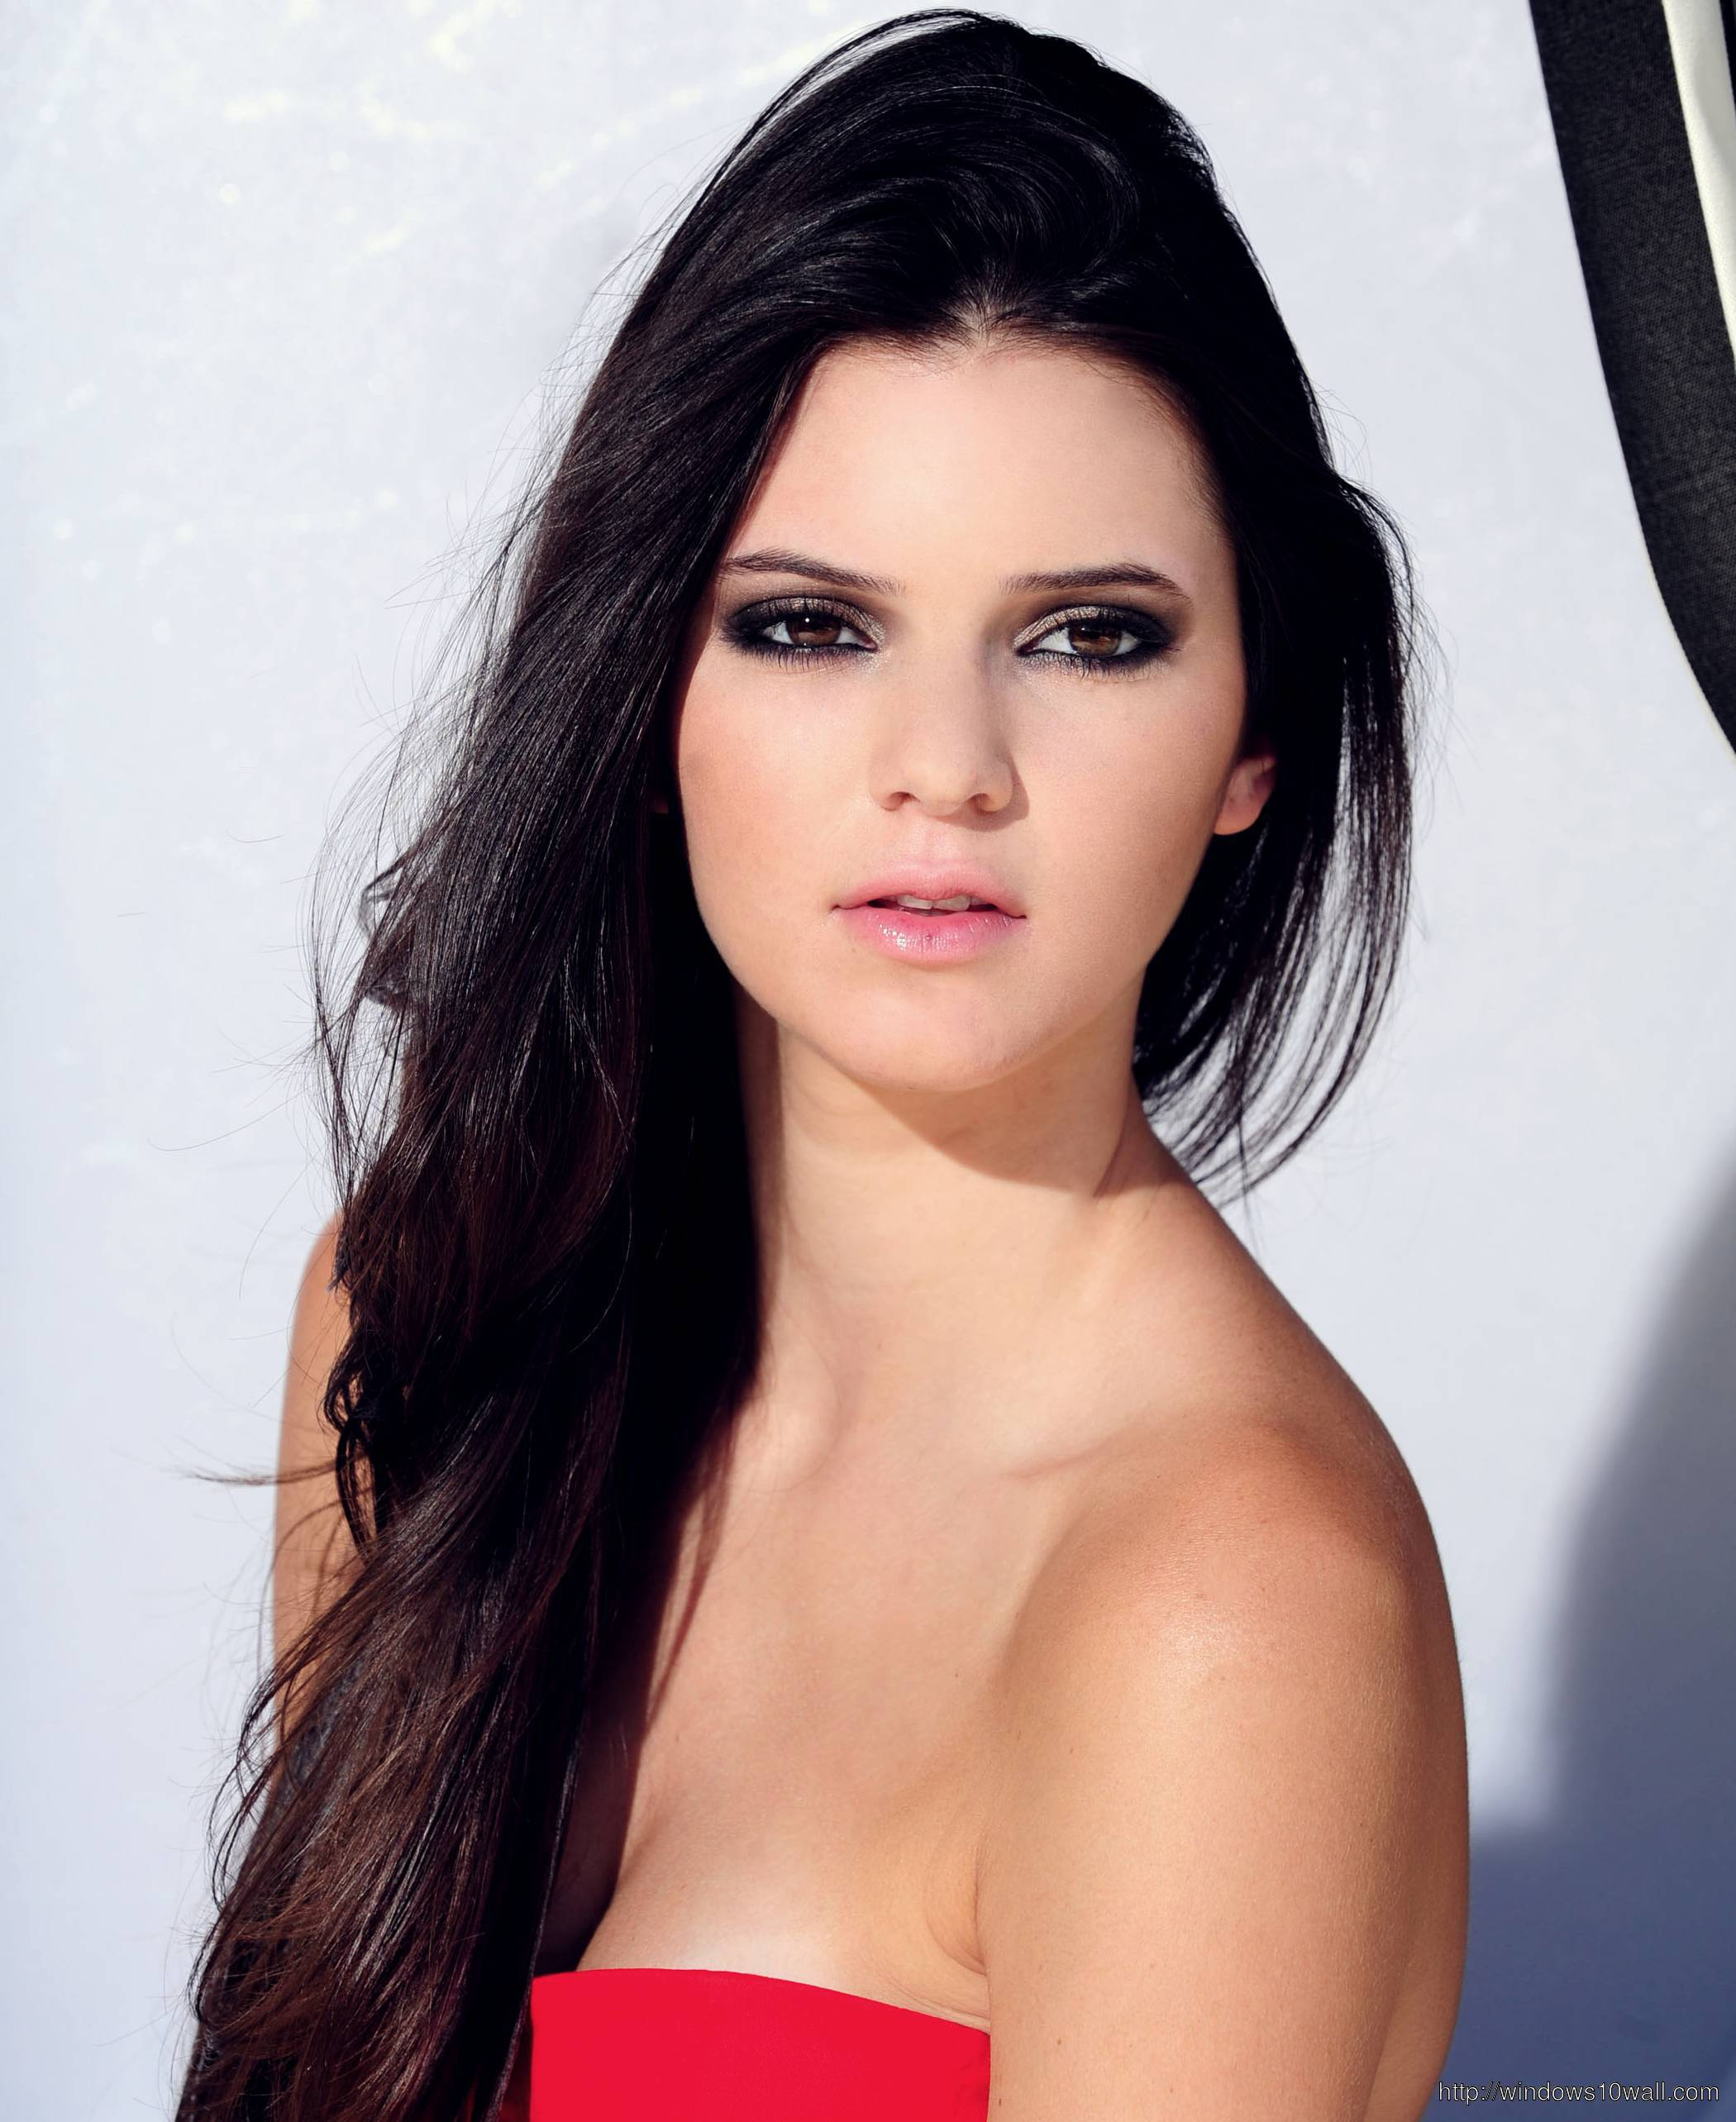 Kendall Jenner looks Gorgeous in Red Dress